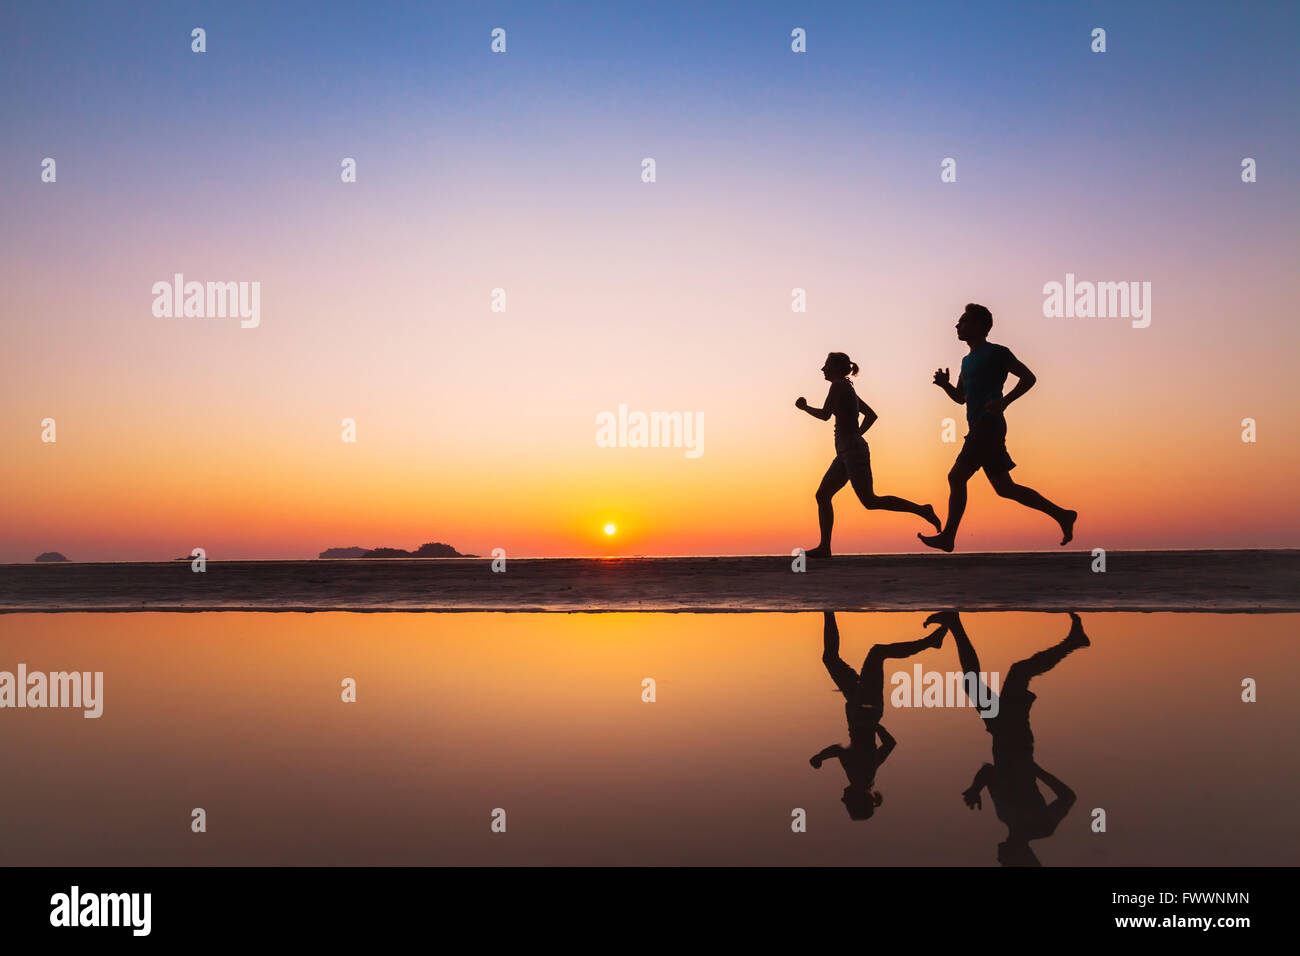 workout, silhouettes of two runners on the beach at sunset, sport and healthy lifestyle background Stock Photo